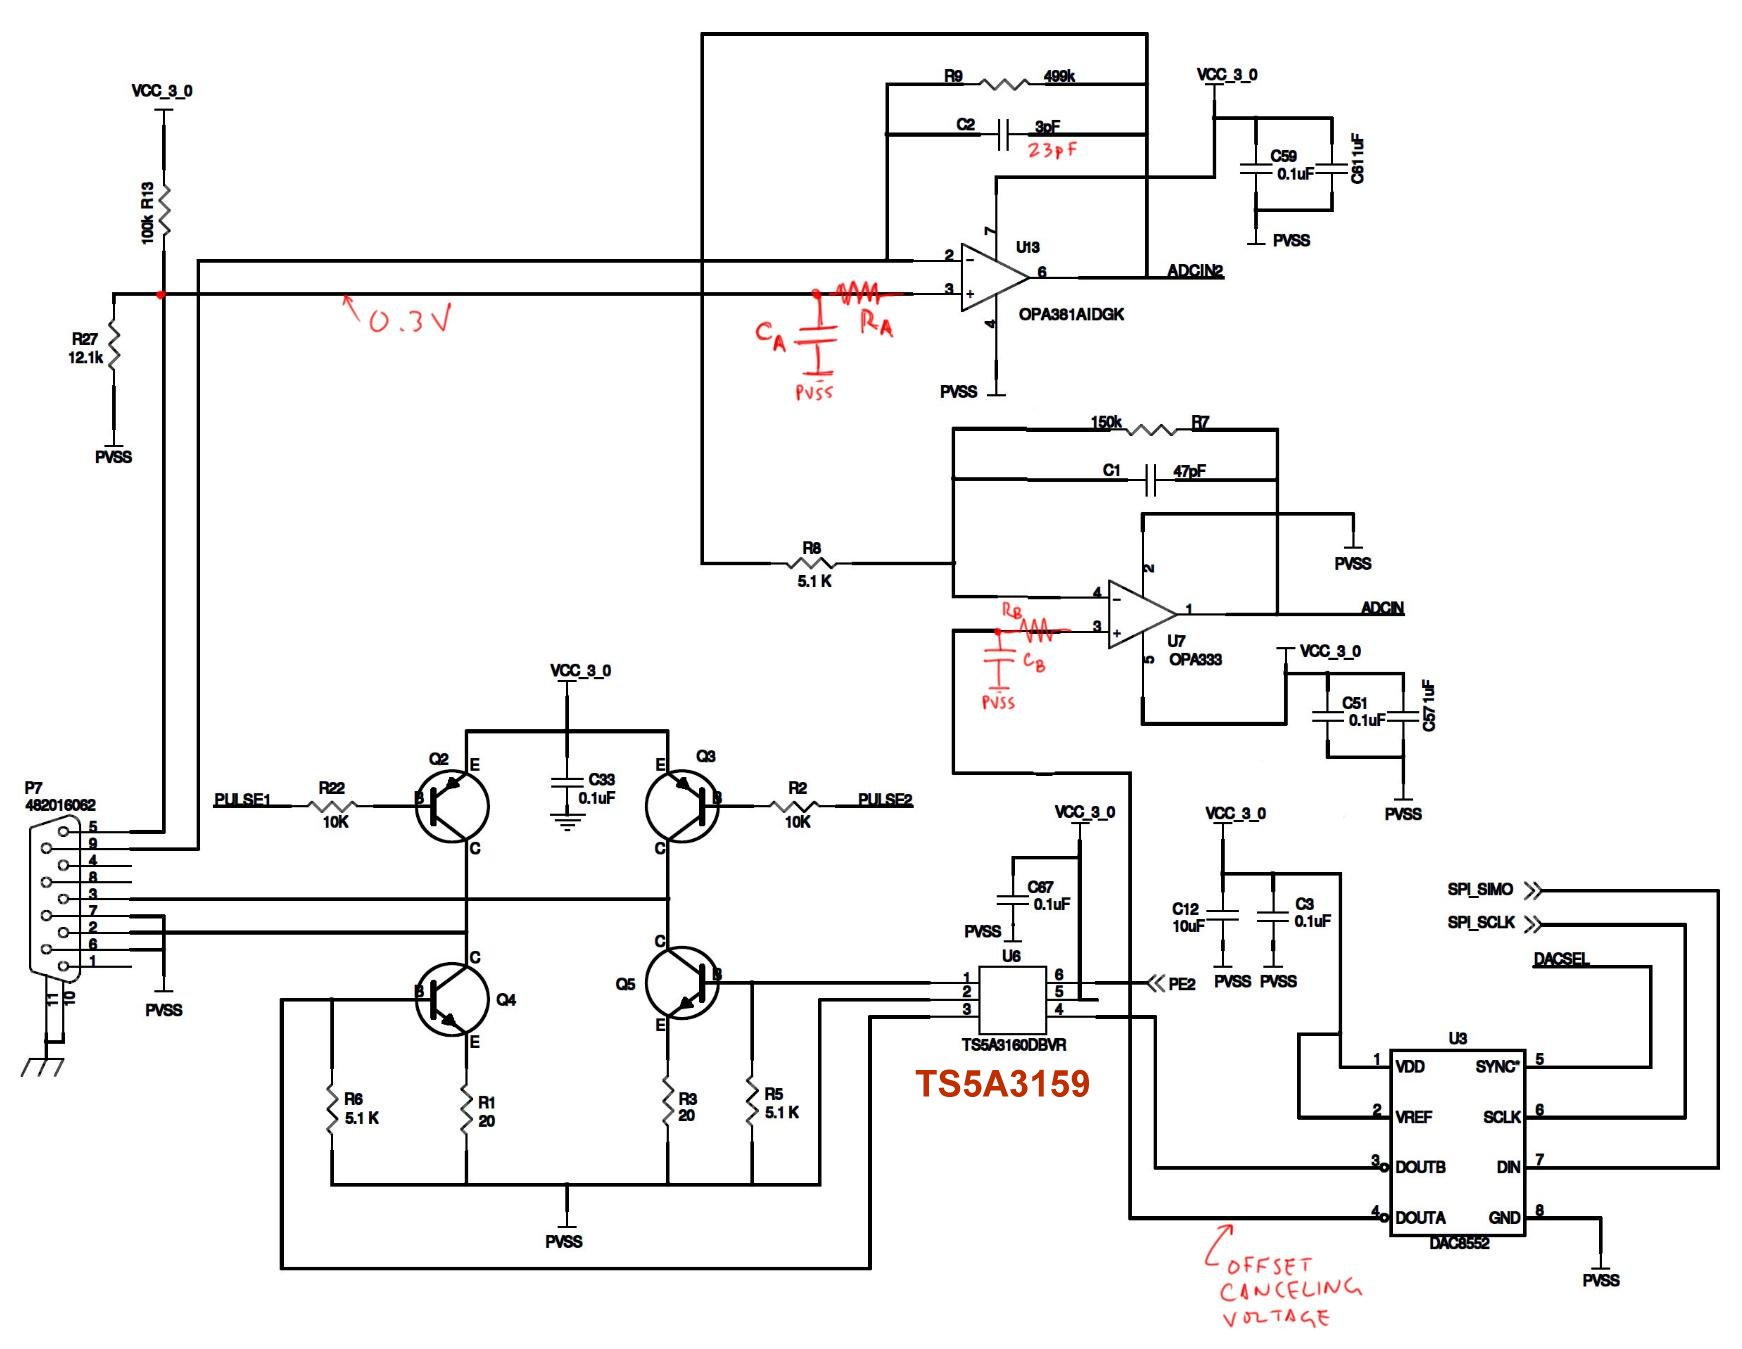 Resolved Transimpedance Amp Output Is Unstable Amplifiers Forum Proposed Amplifier Schematic Ti E2e Community